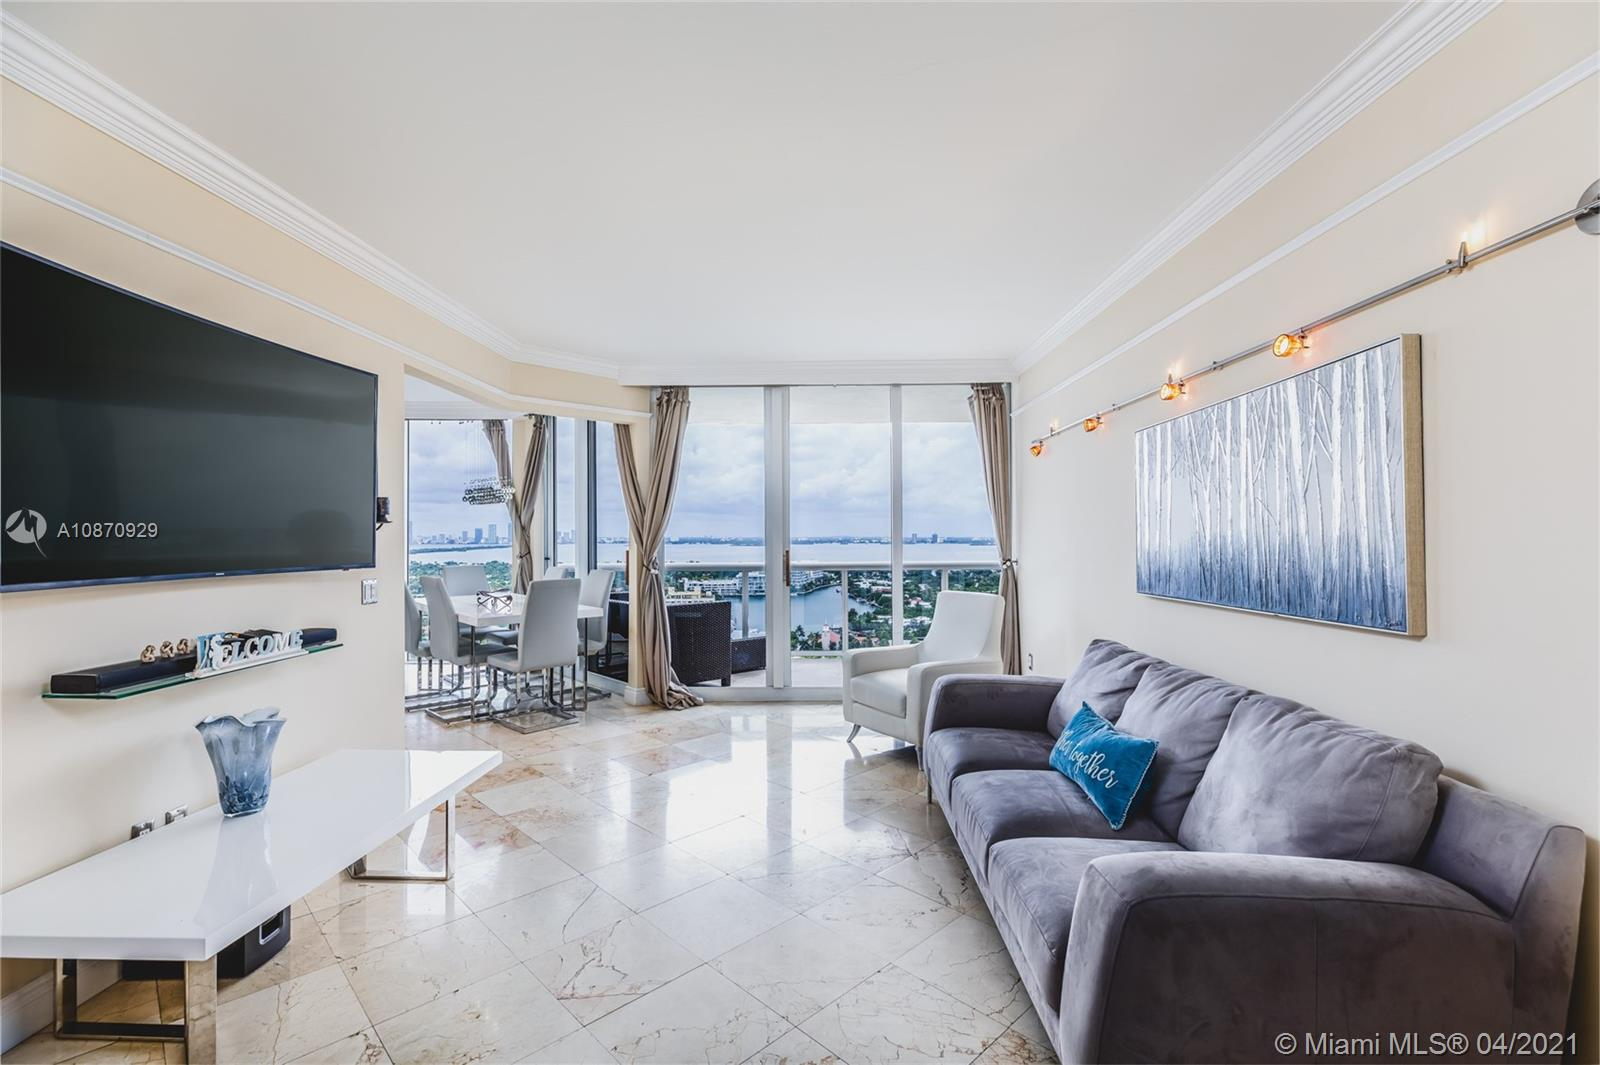 Breathtaking, unobstructed views from this magnificent condo located at the Green Diamond on Millionaires Row. This large 1BD/2BA + an enclosed den (converted into a second room) features beautiful views of the Biscayne Bay, Intracoastal & downtown skyline. From its large terrace, you can sit and enjoy amazing sunsets all year round. Open kitchen with granite countertops, gorgeous marble floors, oversized master bathroom with Jacuzzi and shower, built-in walk-in closet. The building offers 1st-class amenities including 24-hr. security, valet, beach & pool service, tennis court, a 16,000sf oceanside clubhouse recently renovated, with state-of-the-art gym and spa, beauty salon, restaurant, party/card room, inside and outside child play area, loaner bikes, marina and more...